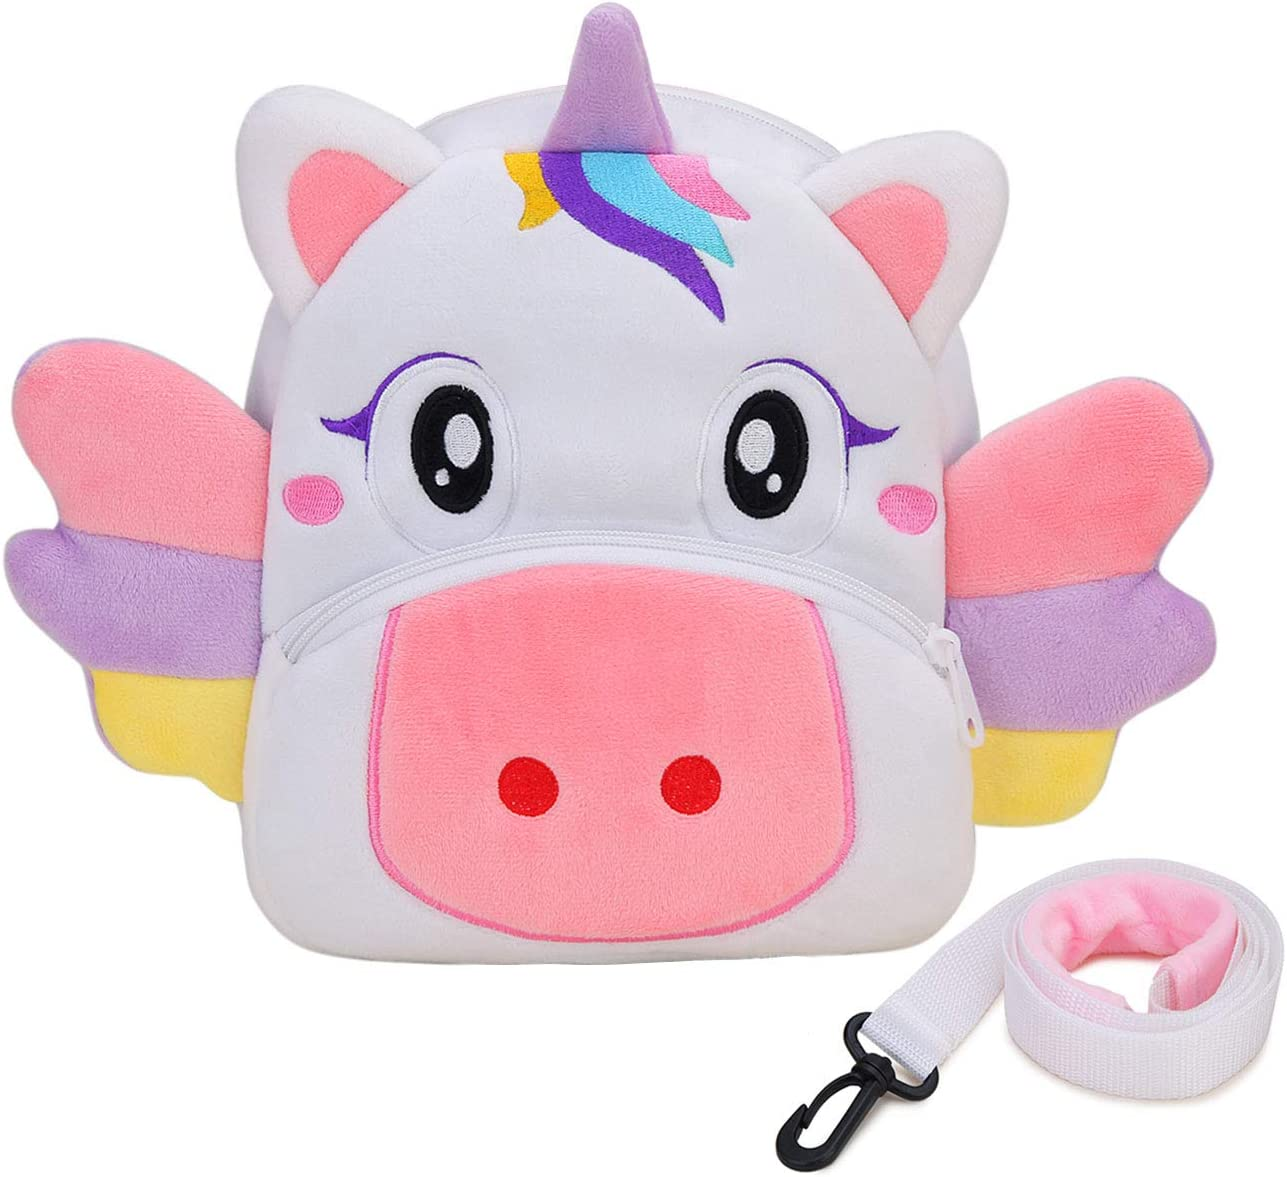 Toddler Backpack,Cute Plush Small Daycare Backpack with Leash for Little Boys Girls Kids with Chest Strap White Unicorn